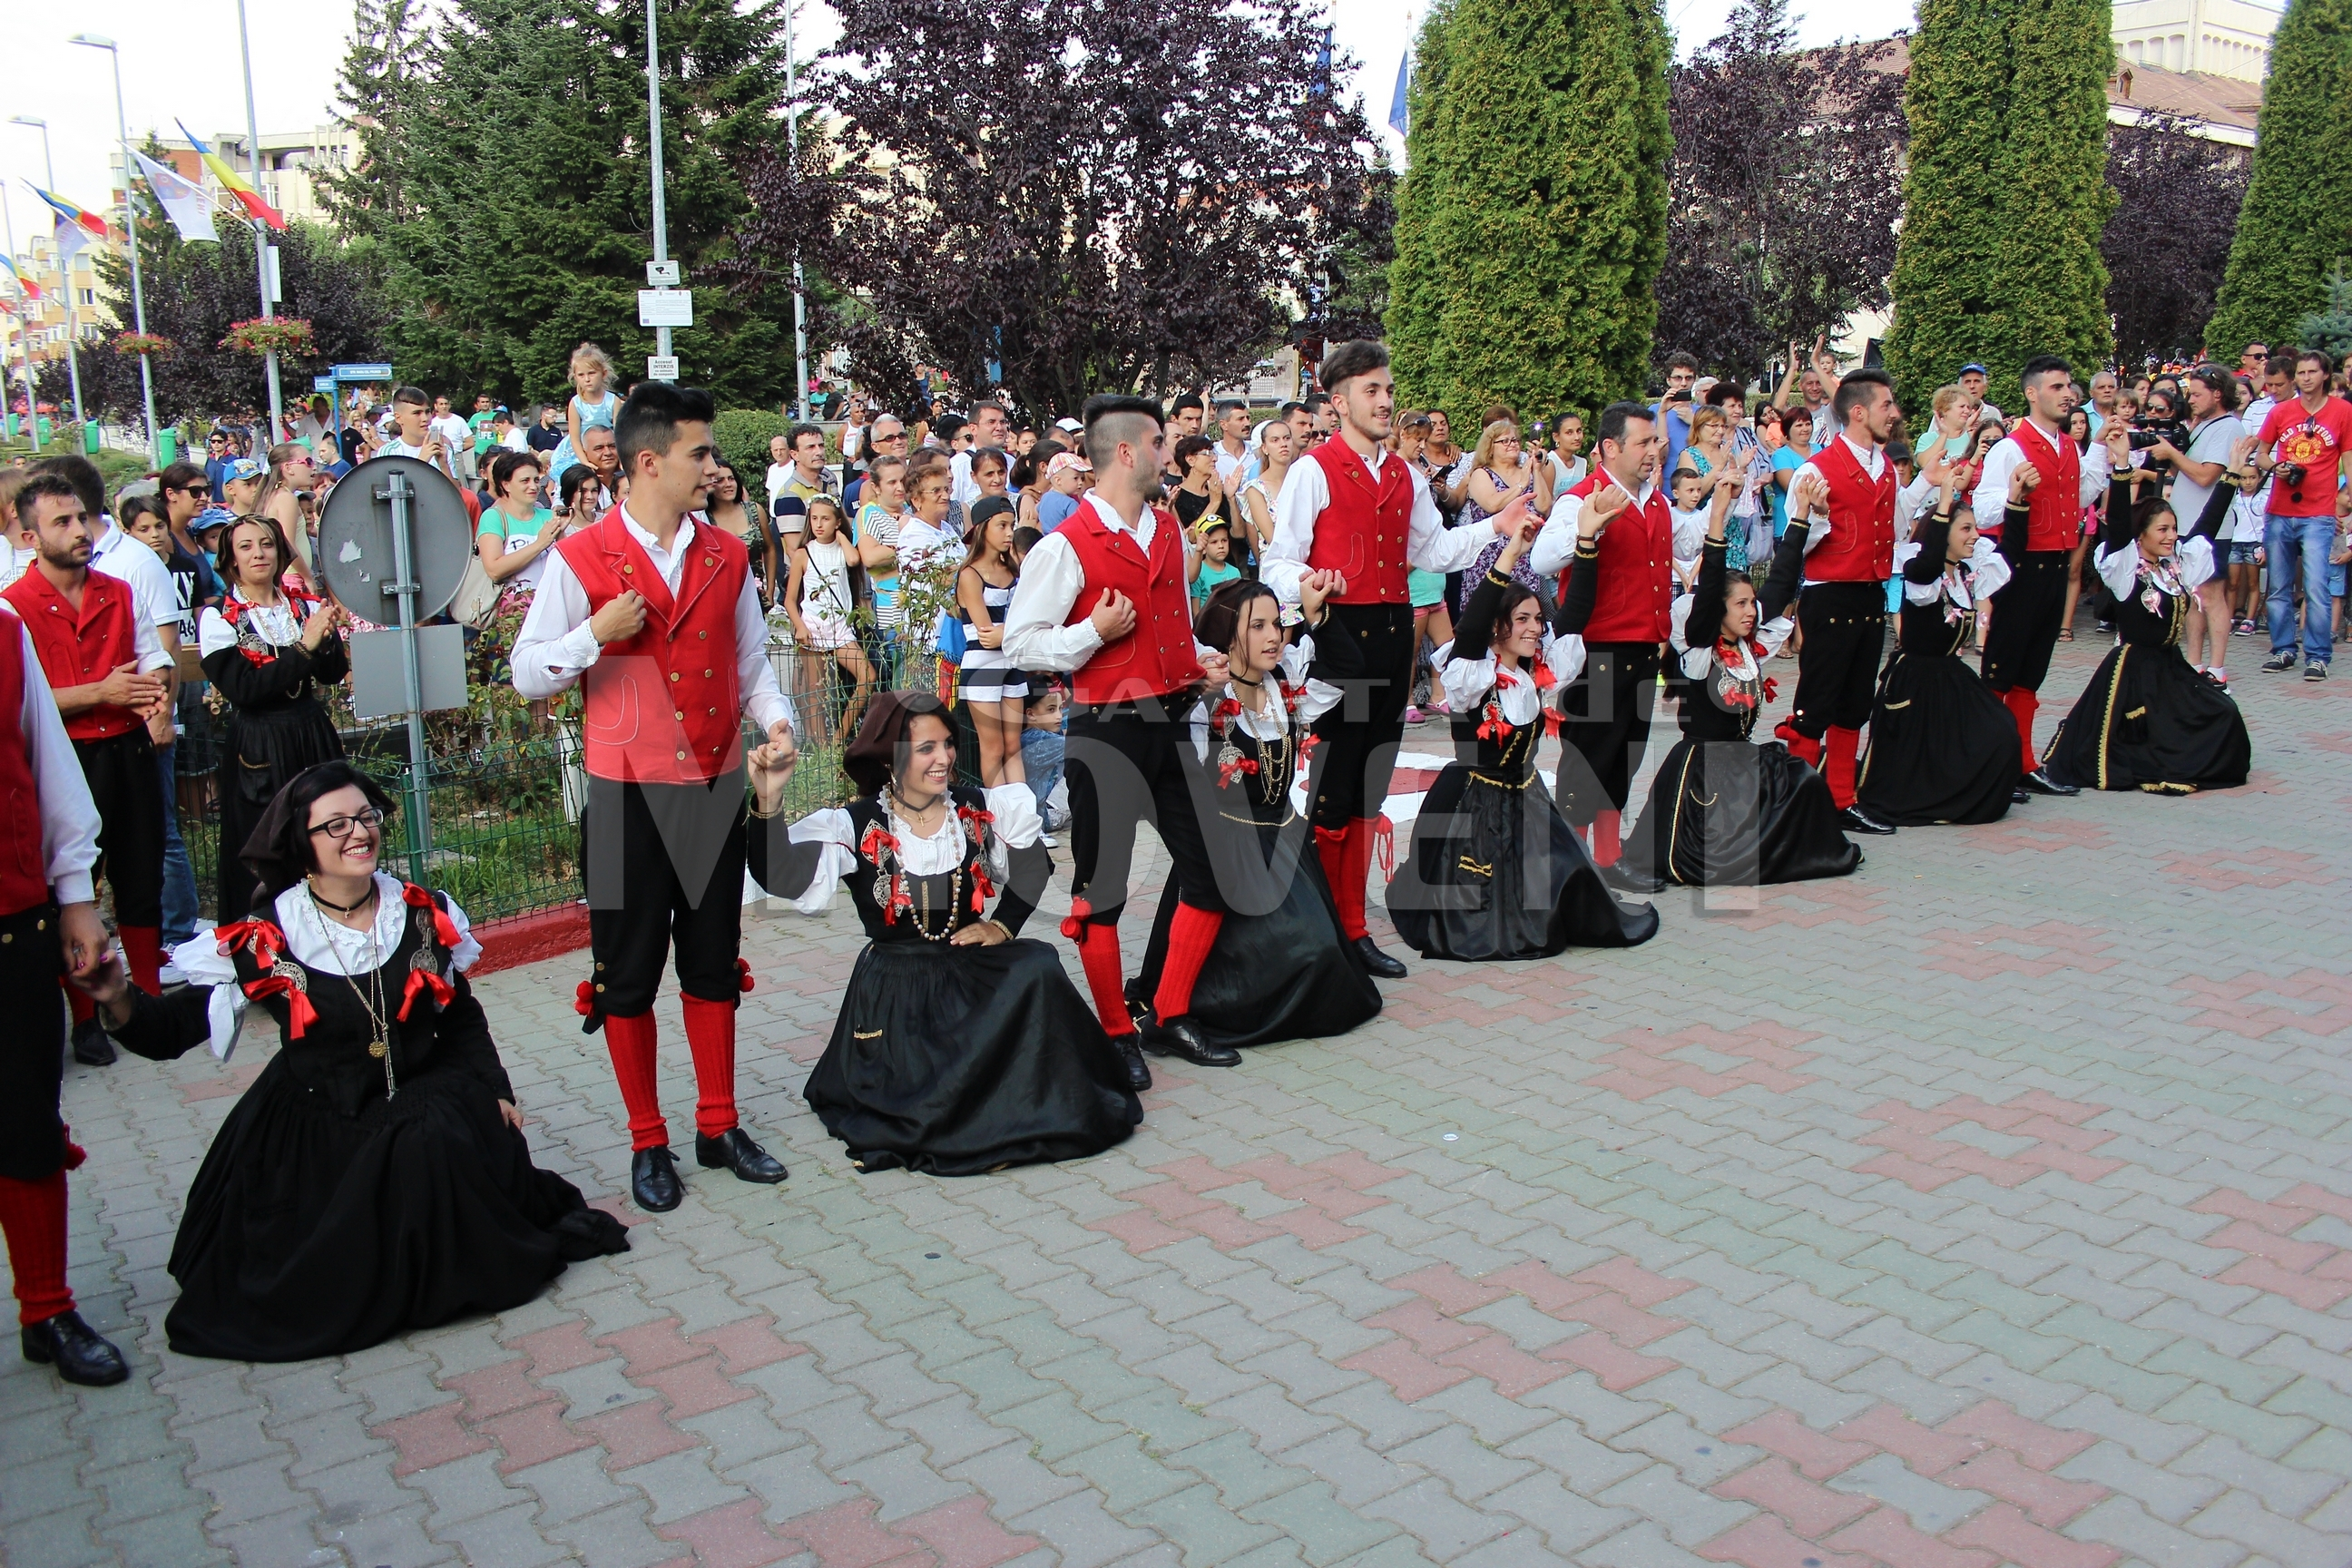 festivalul-international-de-folclor-carpati-mioveni-11-august-2016 (23)